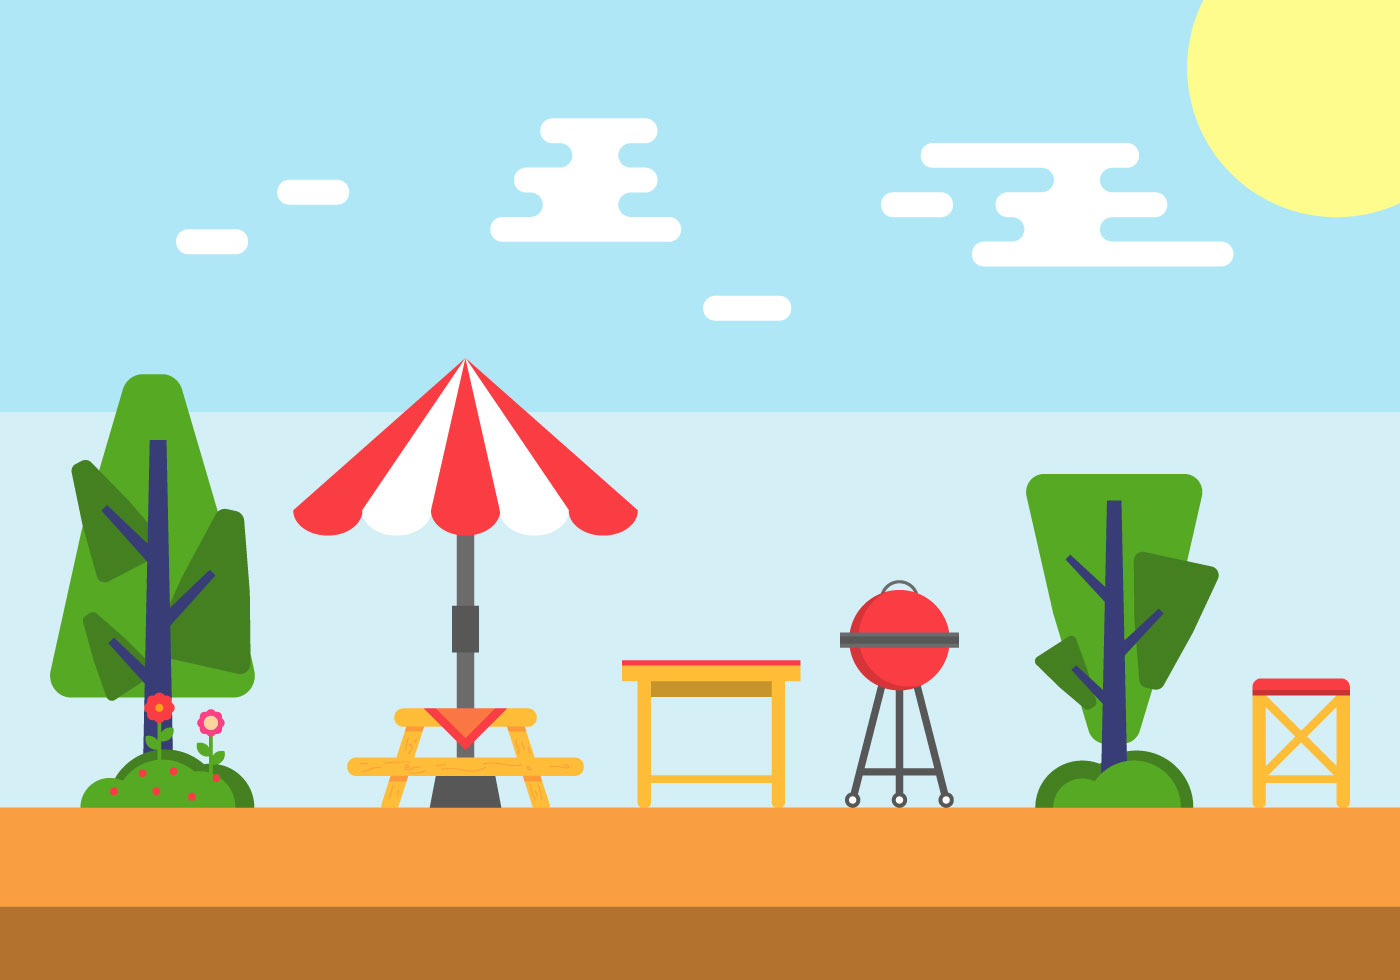 Family Picnic Vector Illustrations 5 Download Free Vector Art Stock Graphics Amp Images